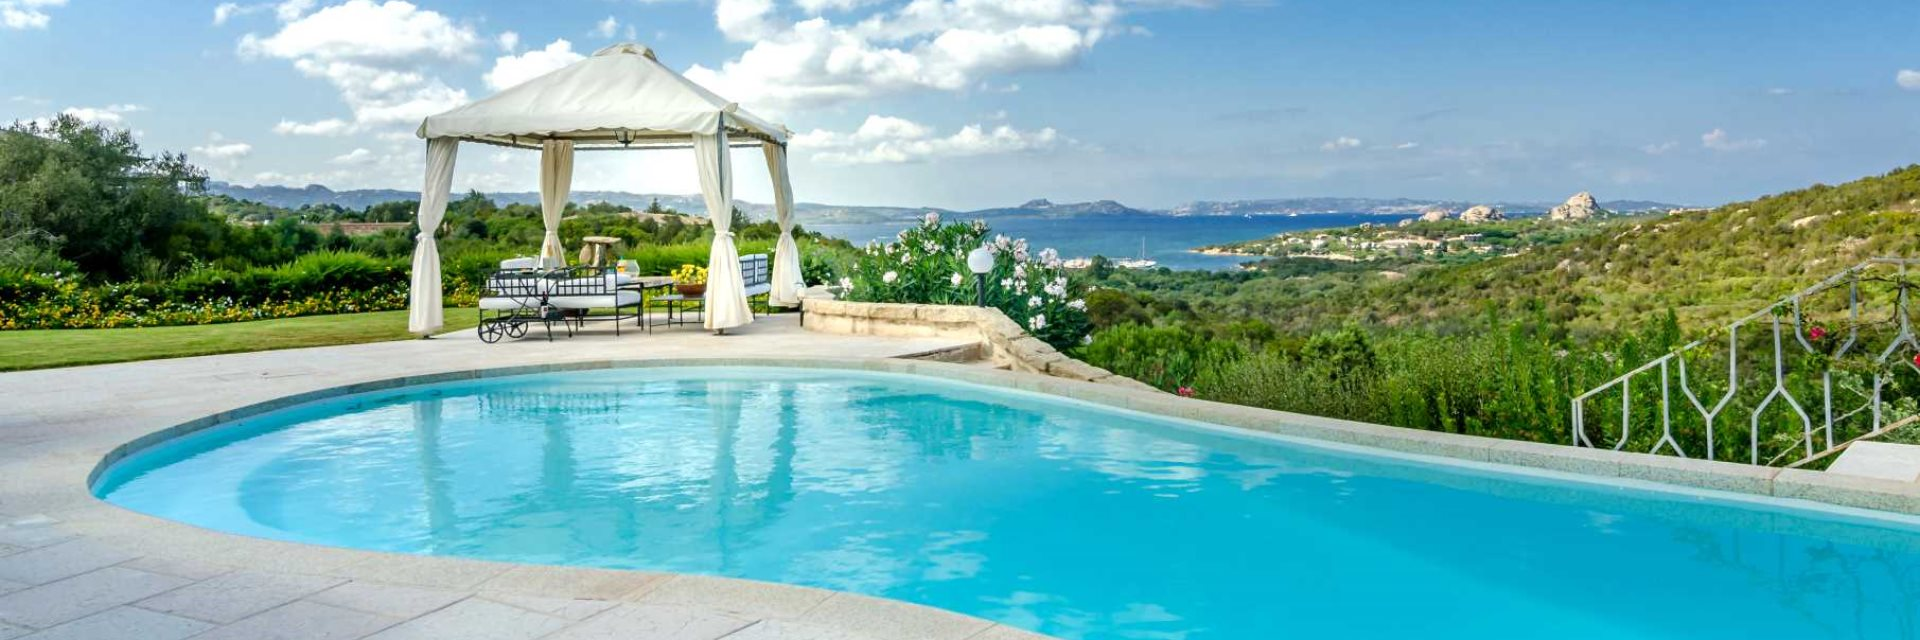 Villa Holidays Sardinia Holiday Ideas